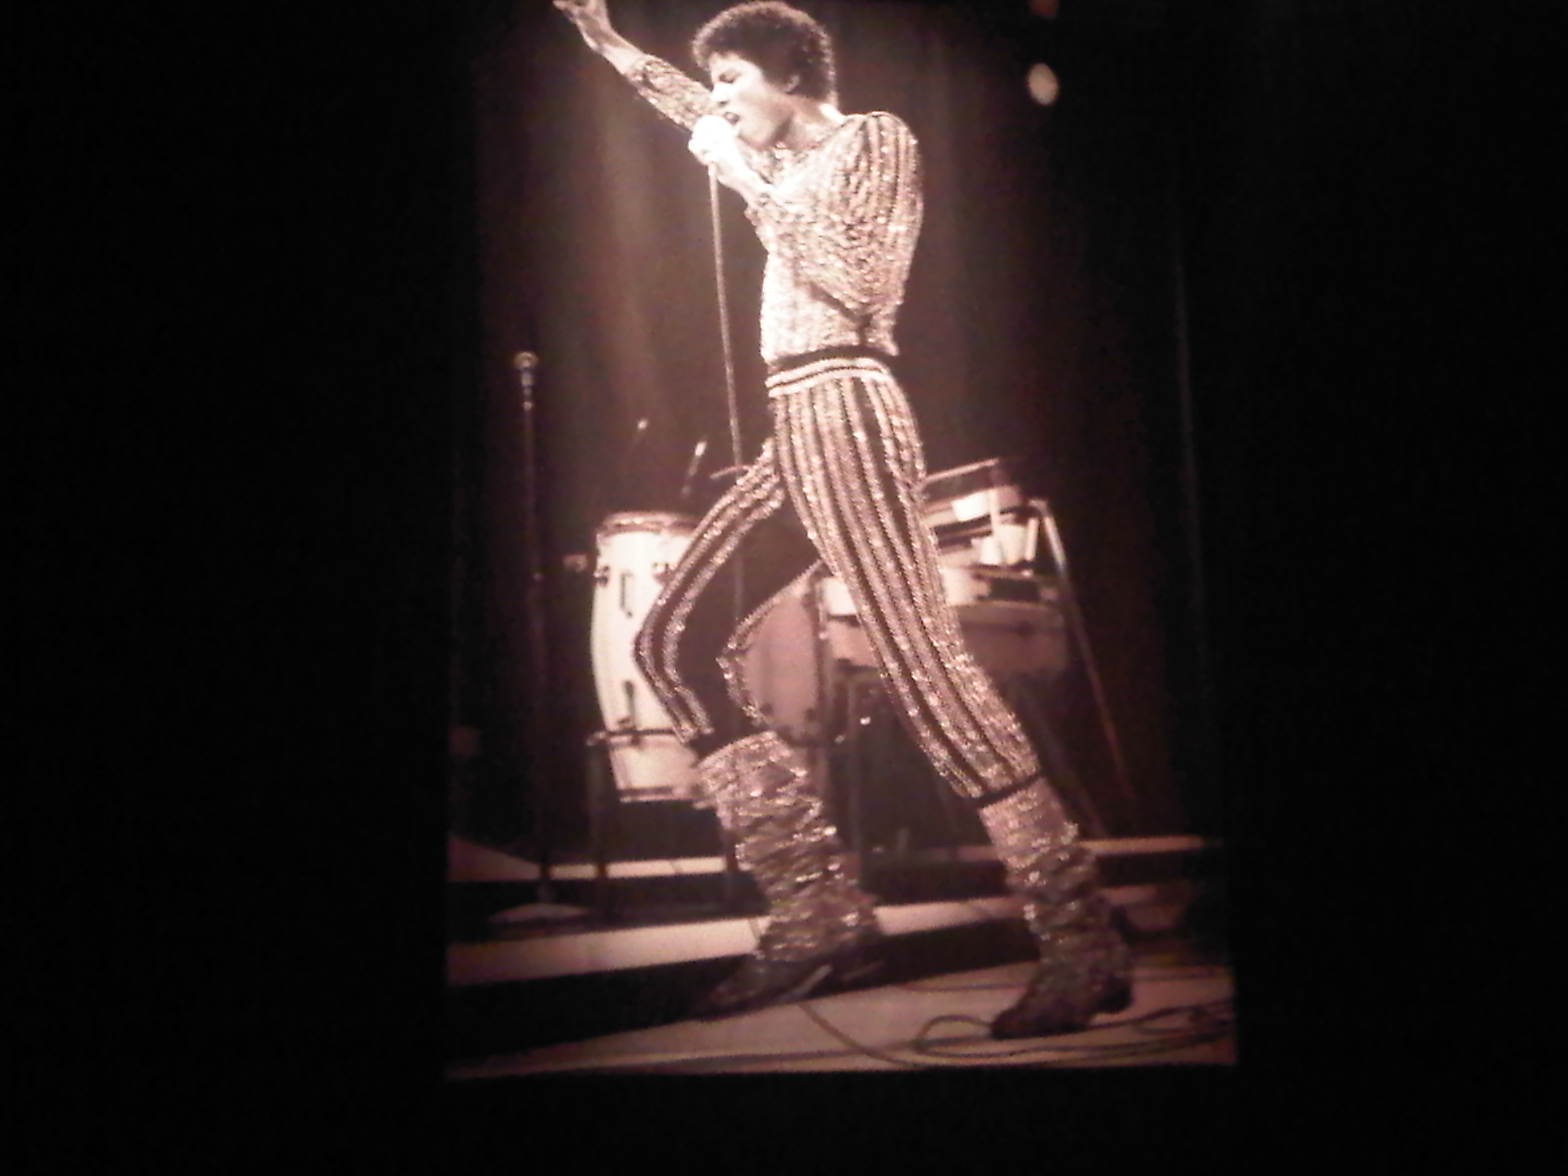 IMG00024 20100227 1712 Review: The Official Michael Jackson Exhibition / London